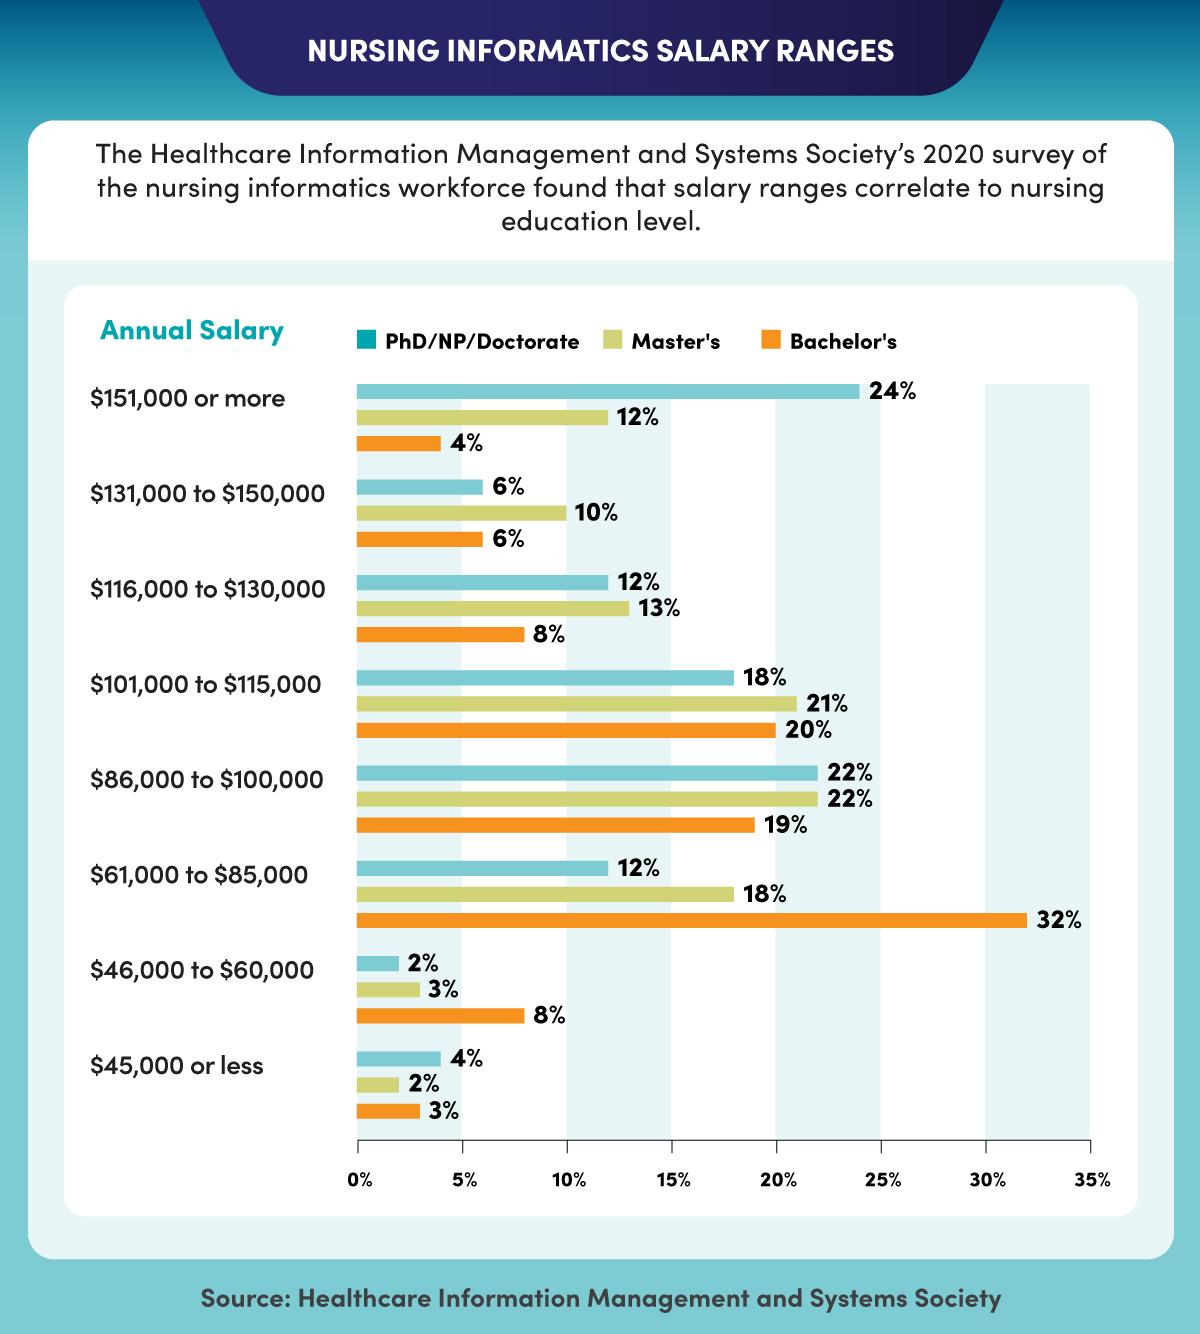 A comparison of salary and education level in nursing informatics.